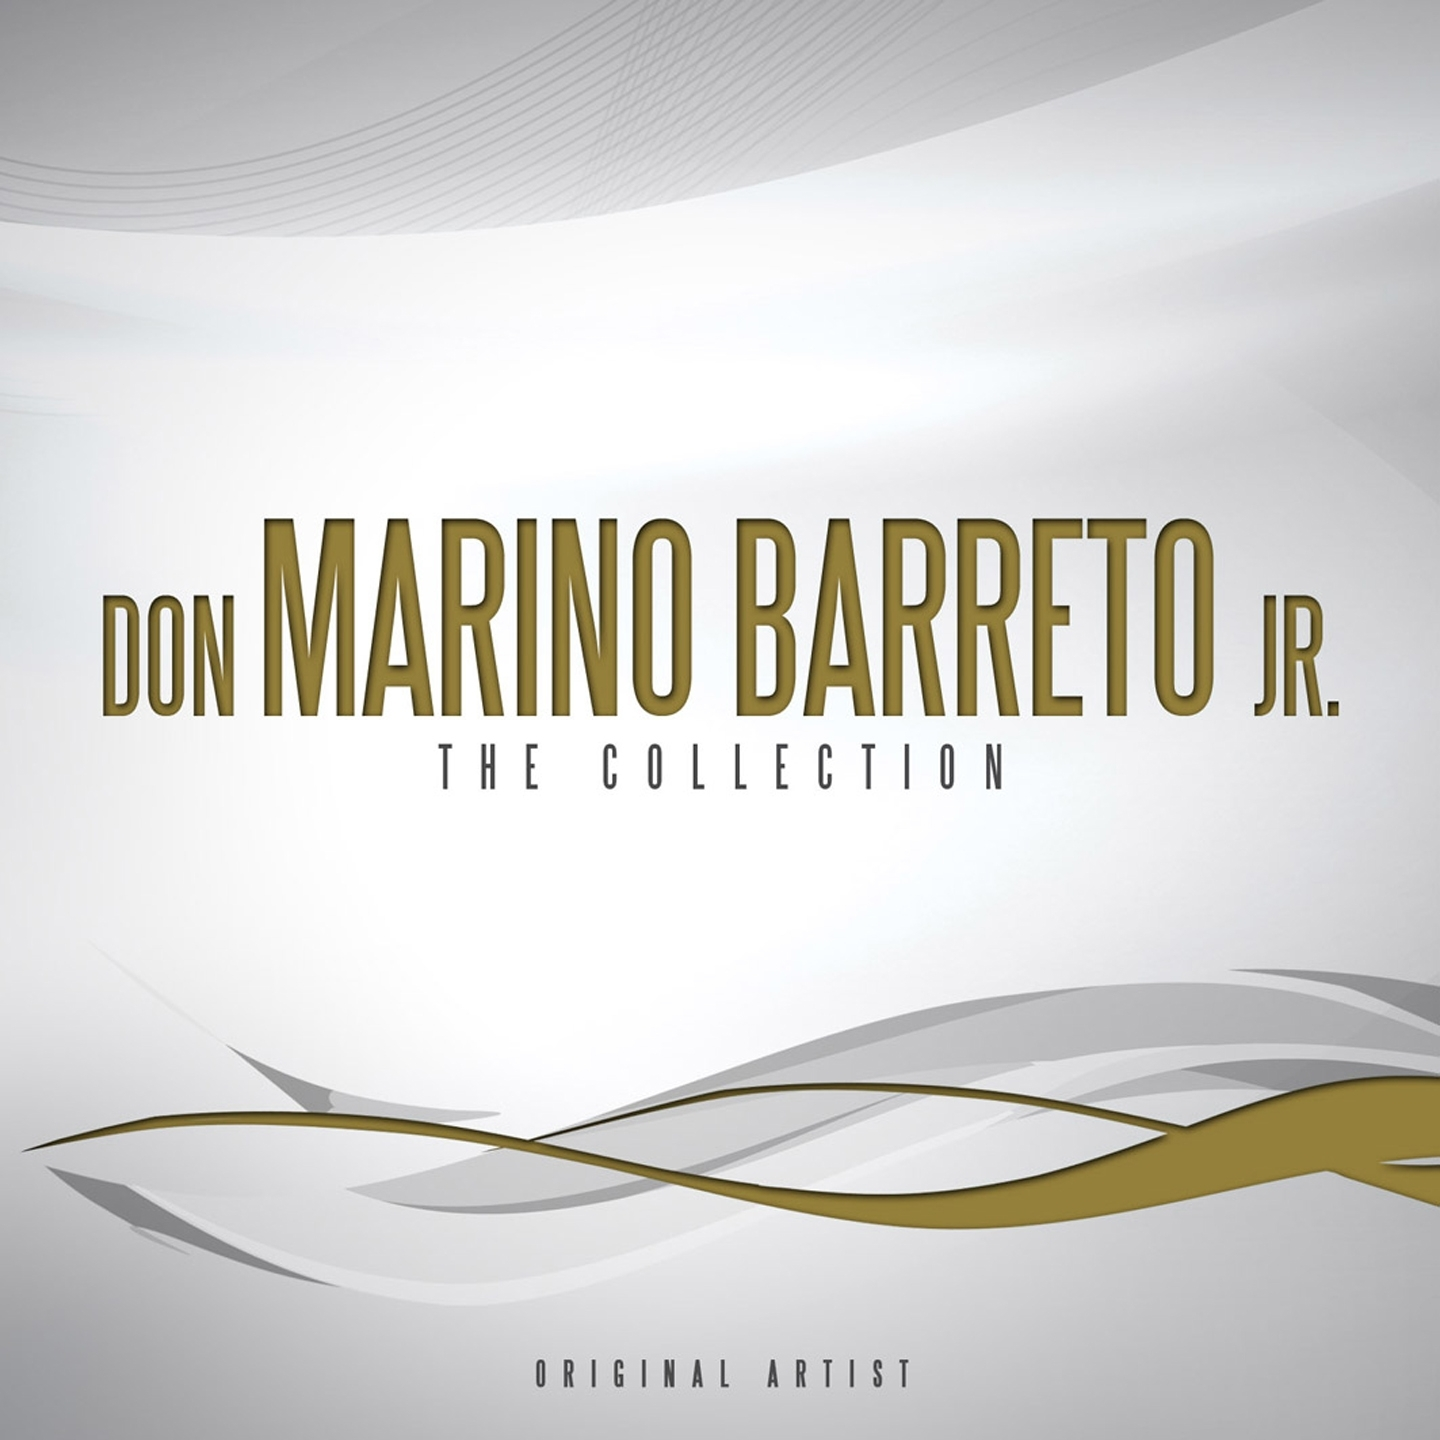 Don Marino Barreto Jr: Le origini